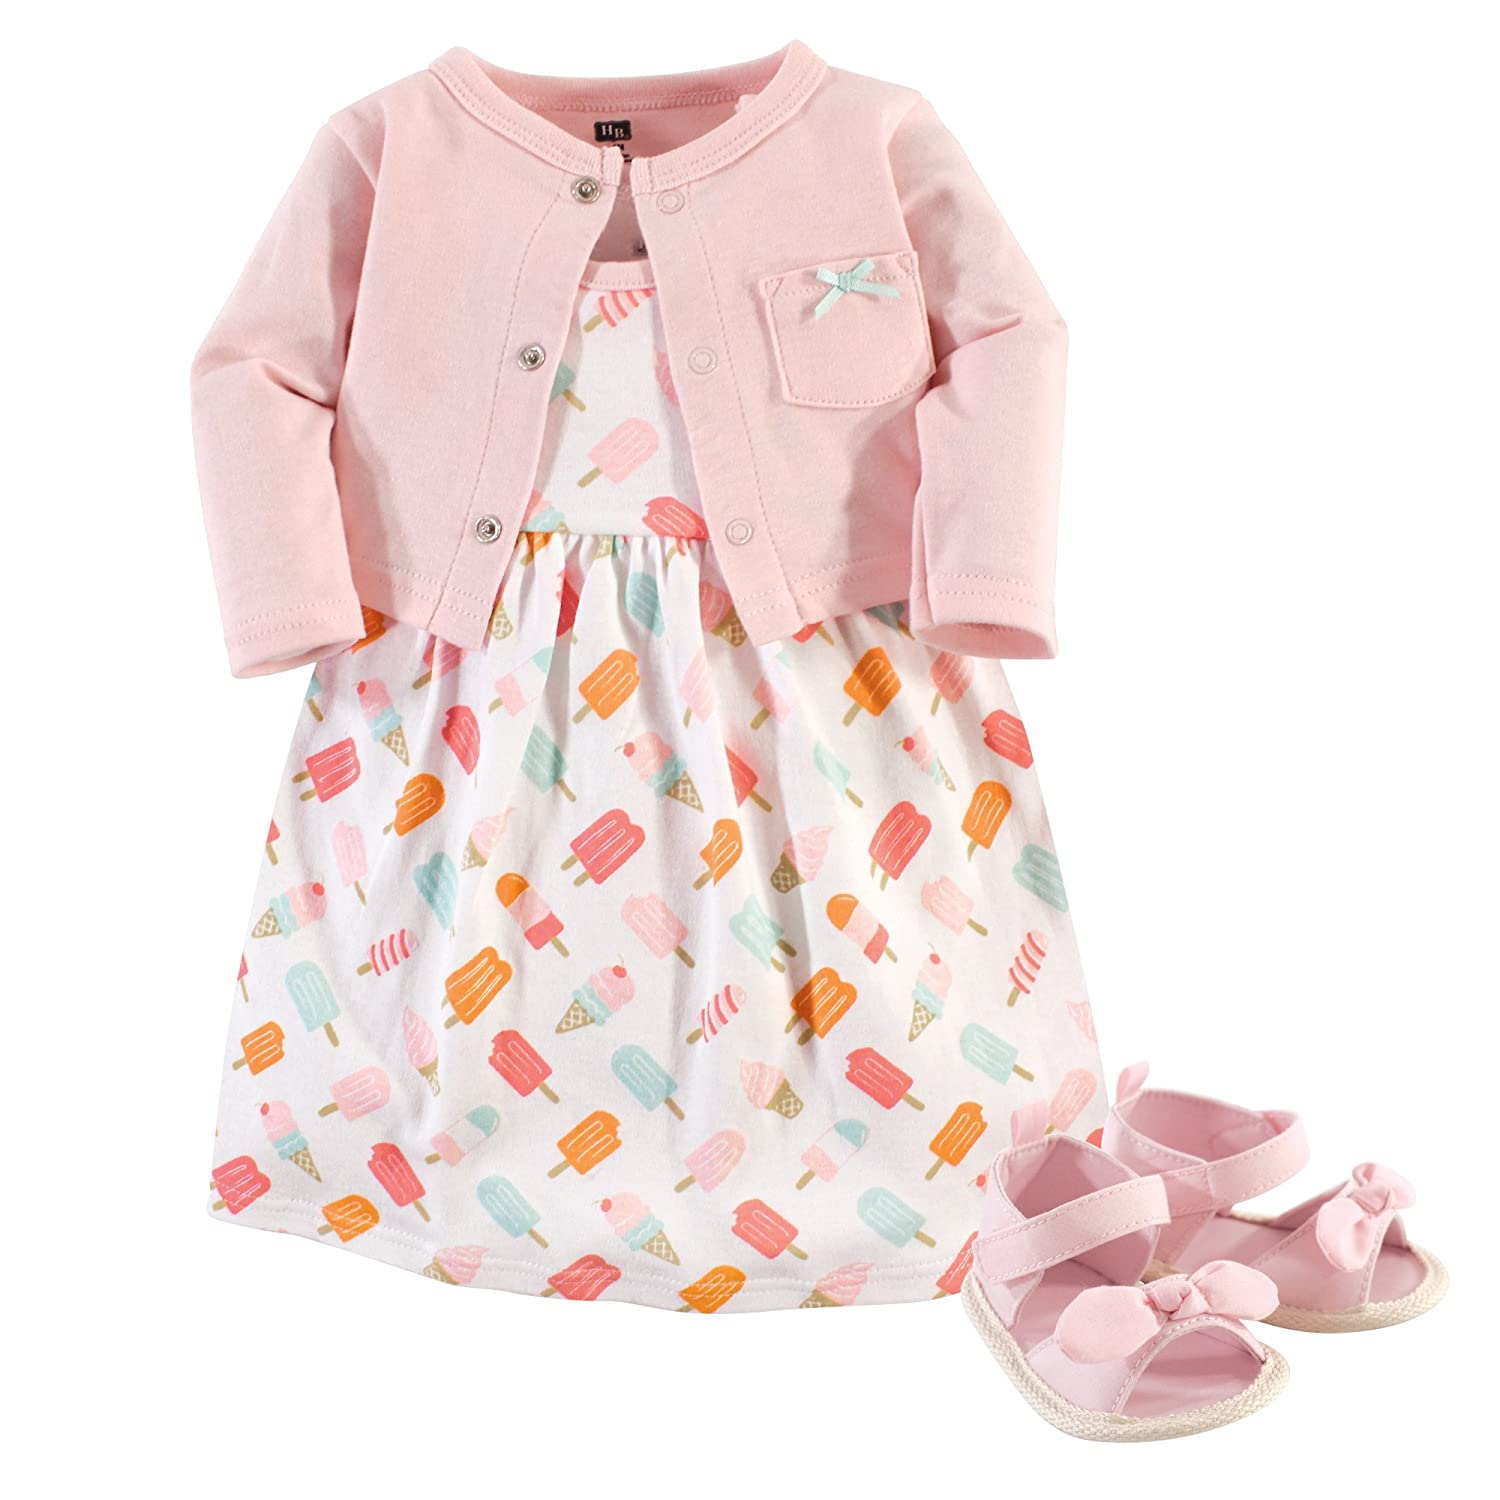 Hudson Baby Girls' 3 Piece Dress, Cardigan, Shoe Set